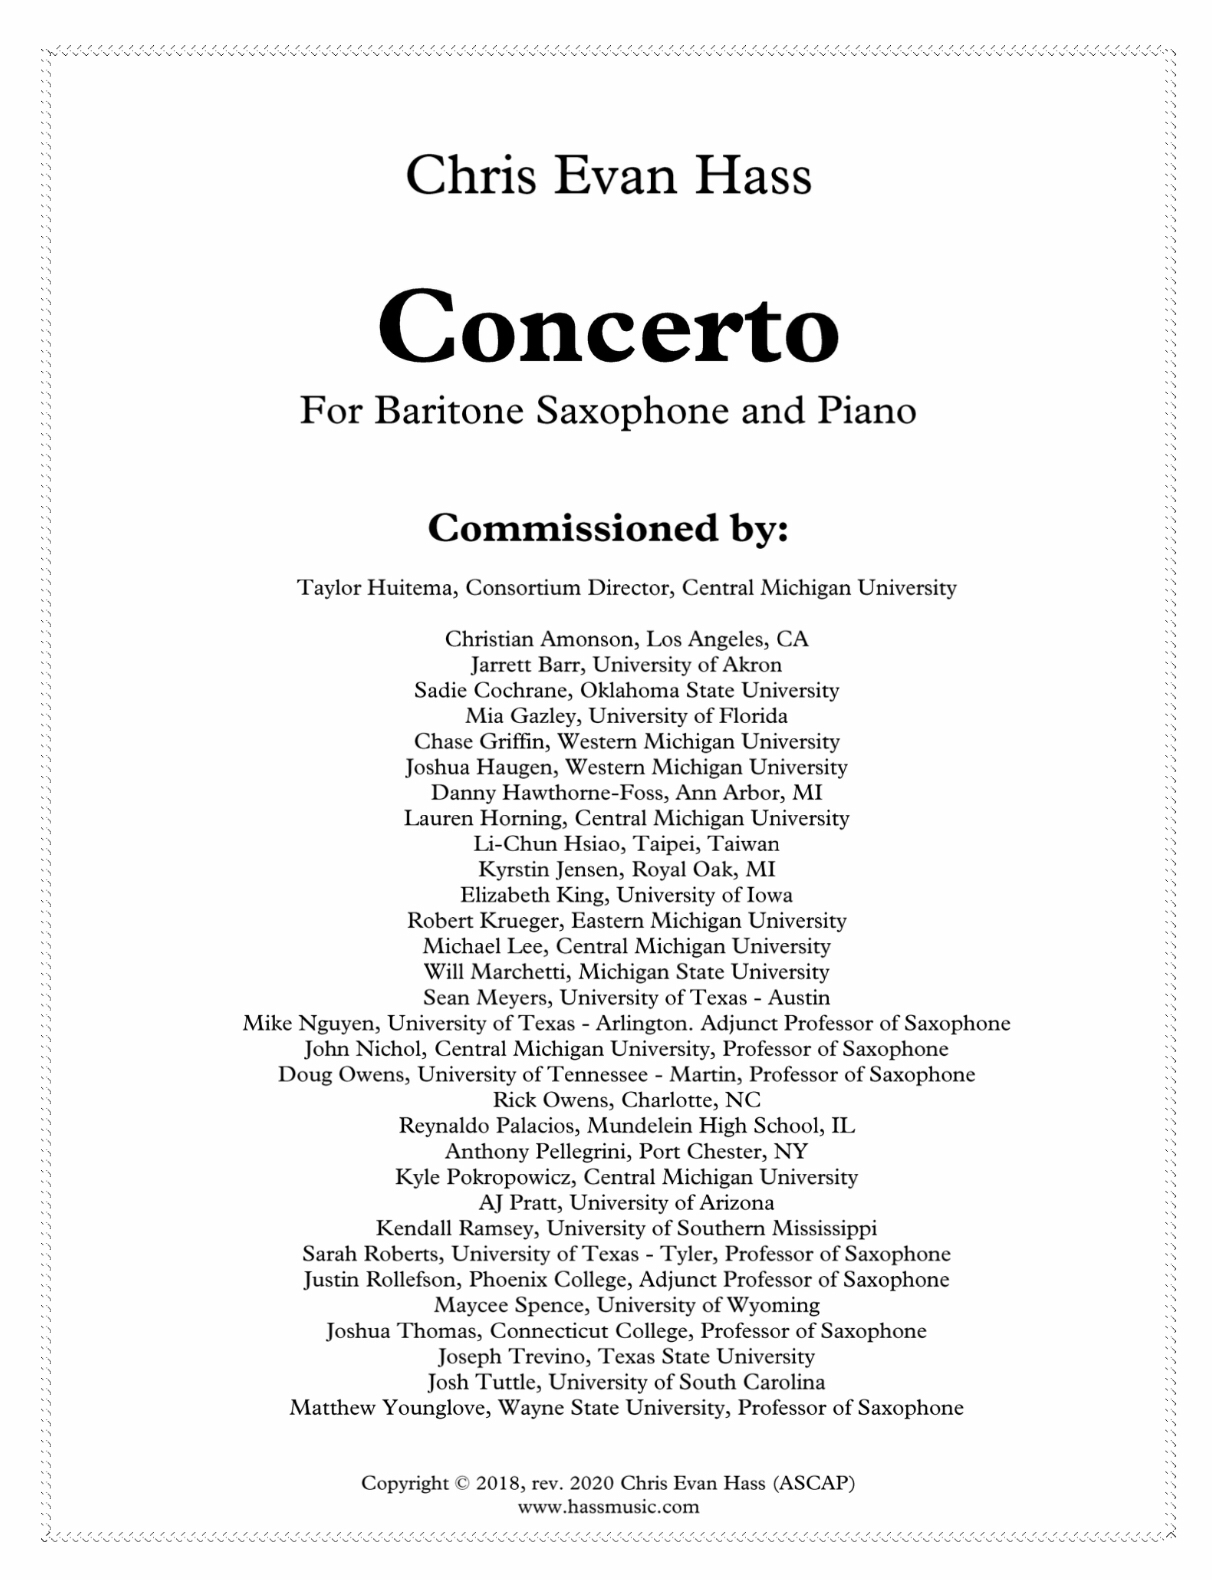 Concerto For Baritone Saxophone And String Orchestra (Piano Reduction) by Chris Evan Hass